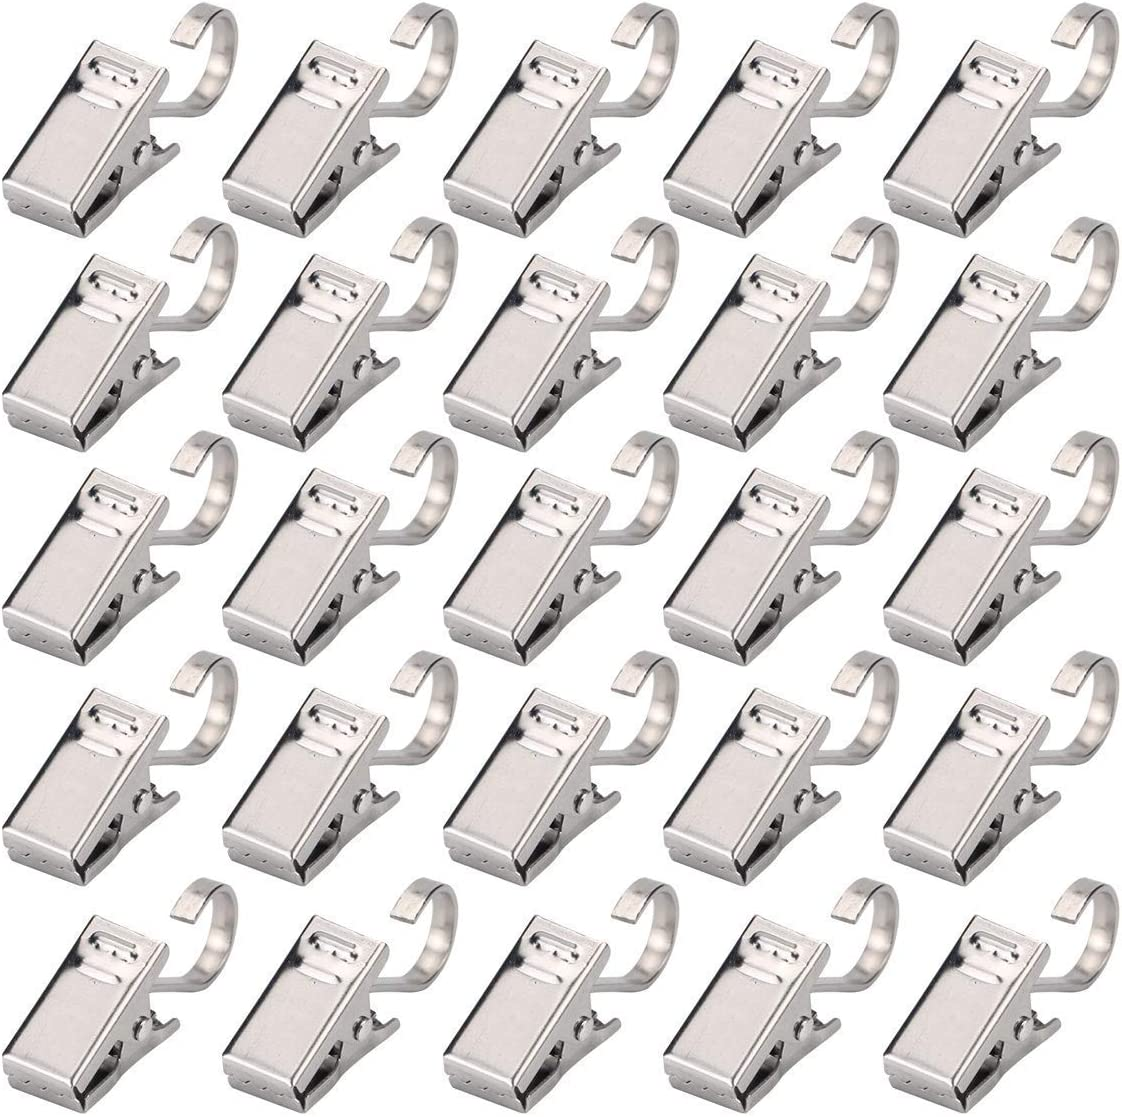 Curtain Clips with Hook - 30pcs Stainless Steel Heavy Duty Satin Nickel Clamp for Shower, Photos, Home Decoration, Outdoor Party, Wire Holder